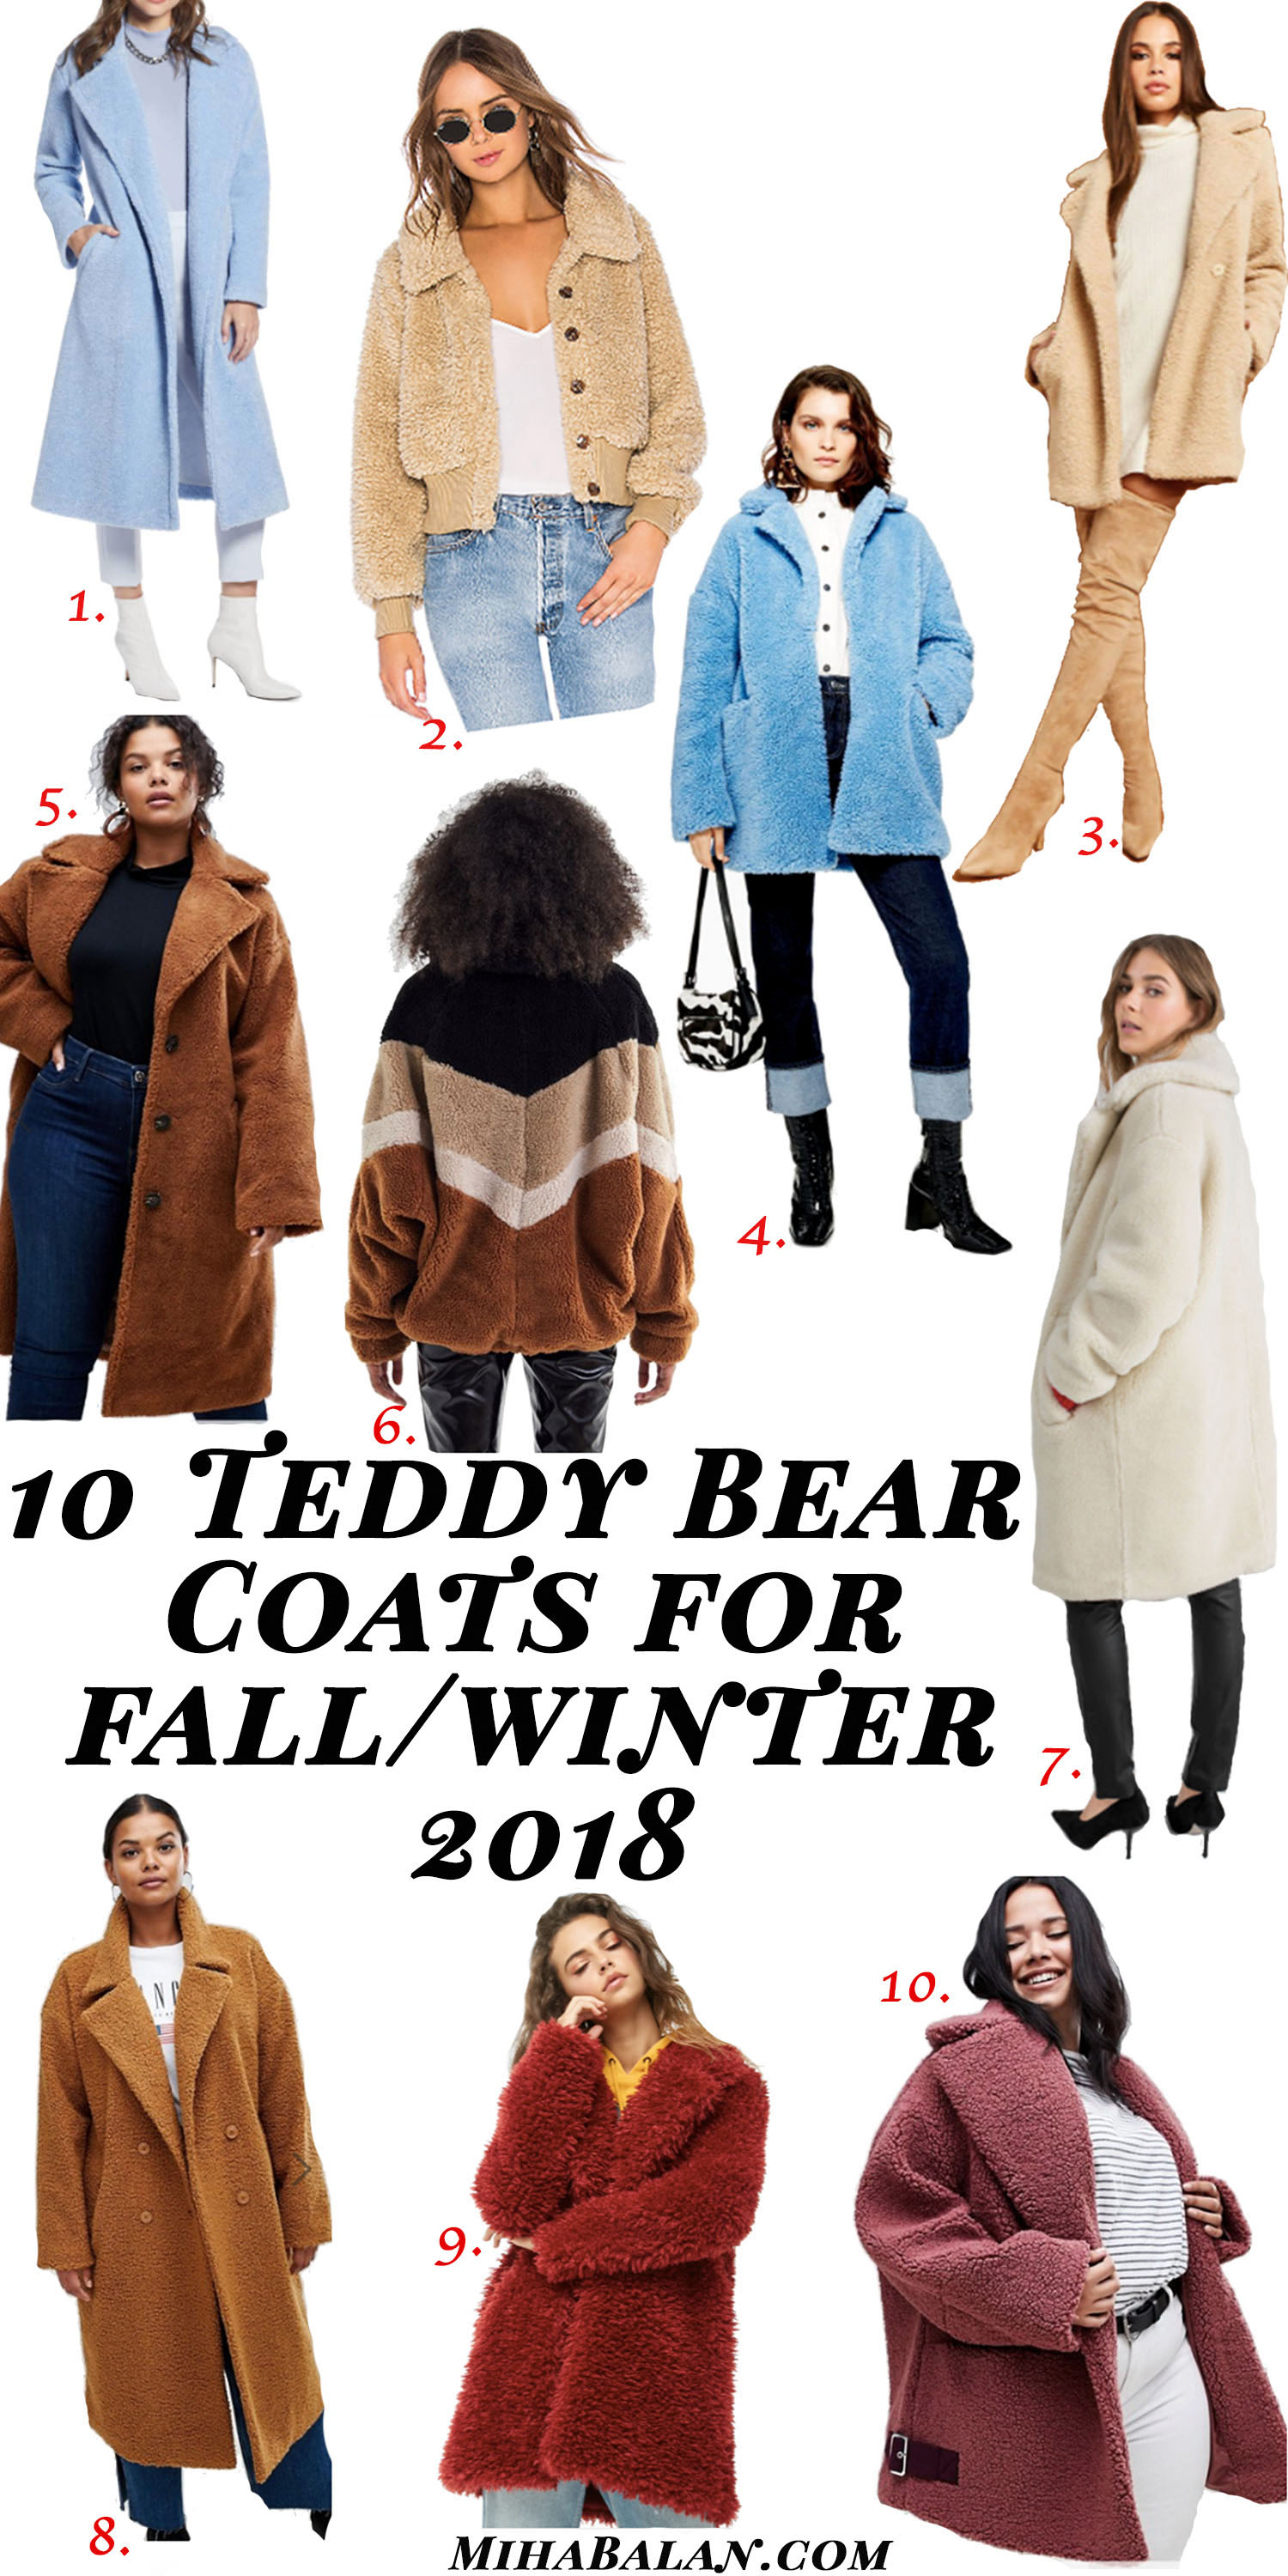 10 teddy bear coats for you this fall winter 2018, coats and jacket, fall fashion, fall outfit idea